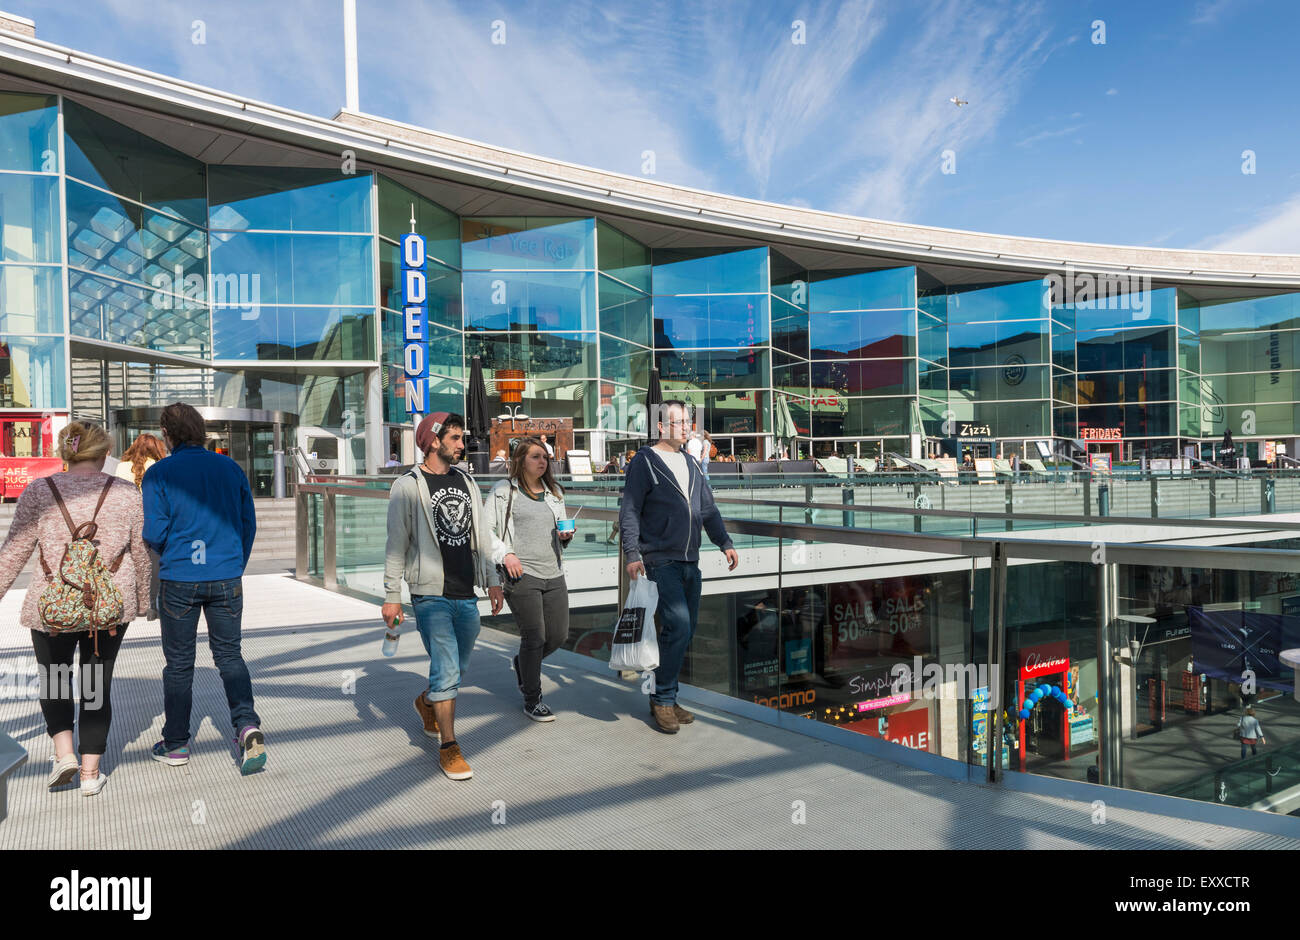 Open air shopping in Liverpool One, Liverpool, Merseyside, England, UK - Stock Image